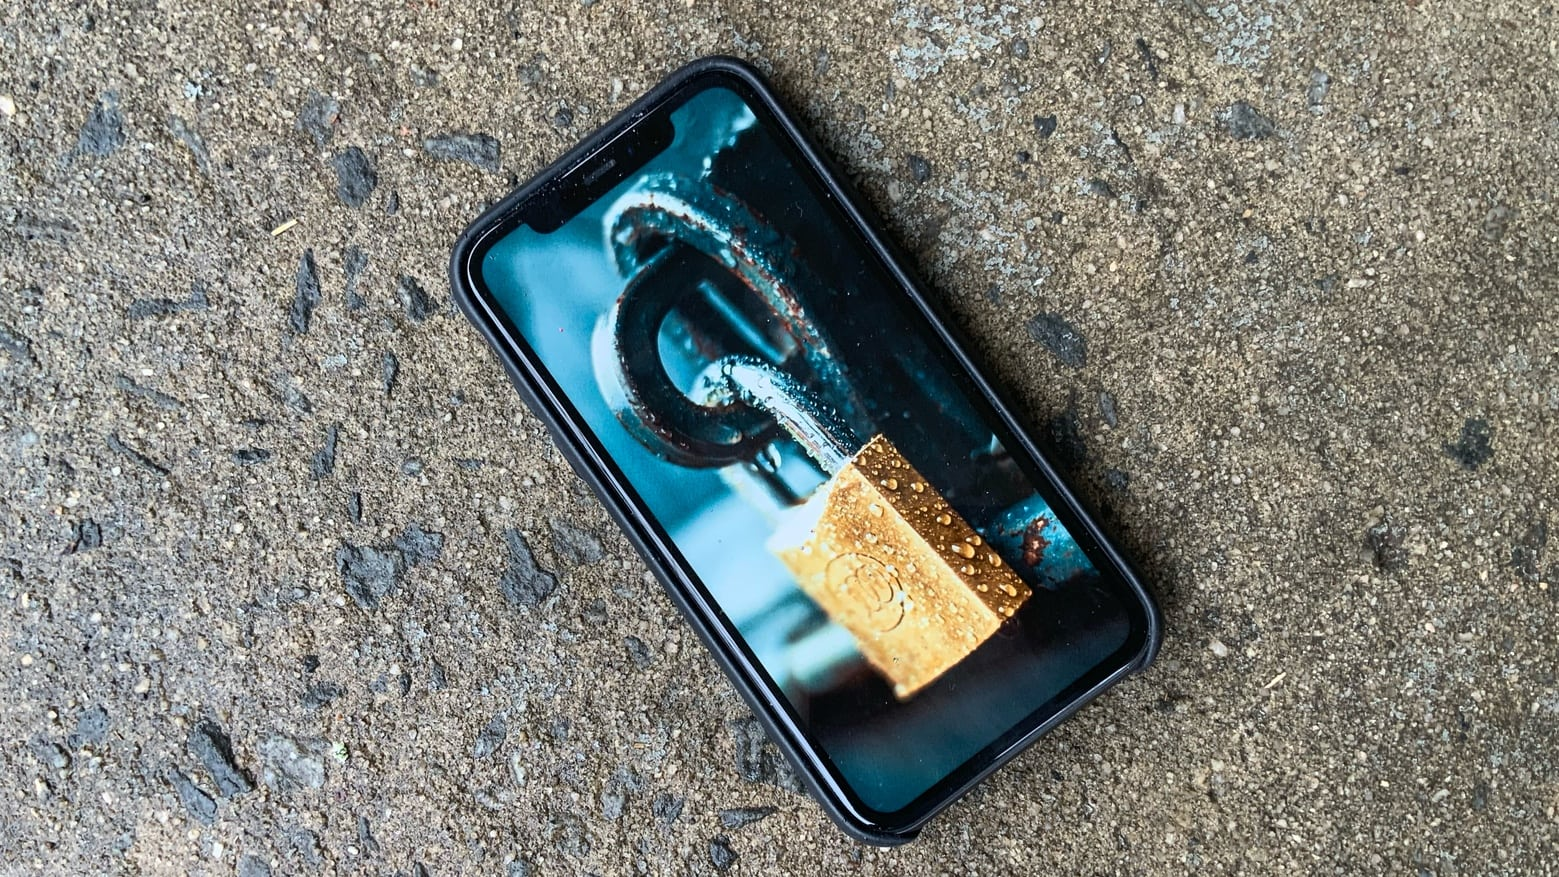 The FBI finally hacked an iPhone 11